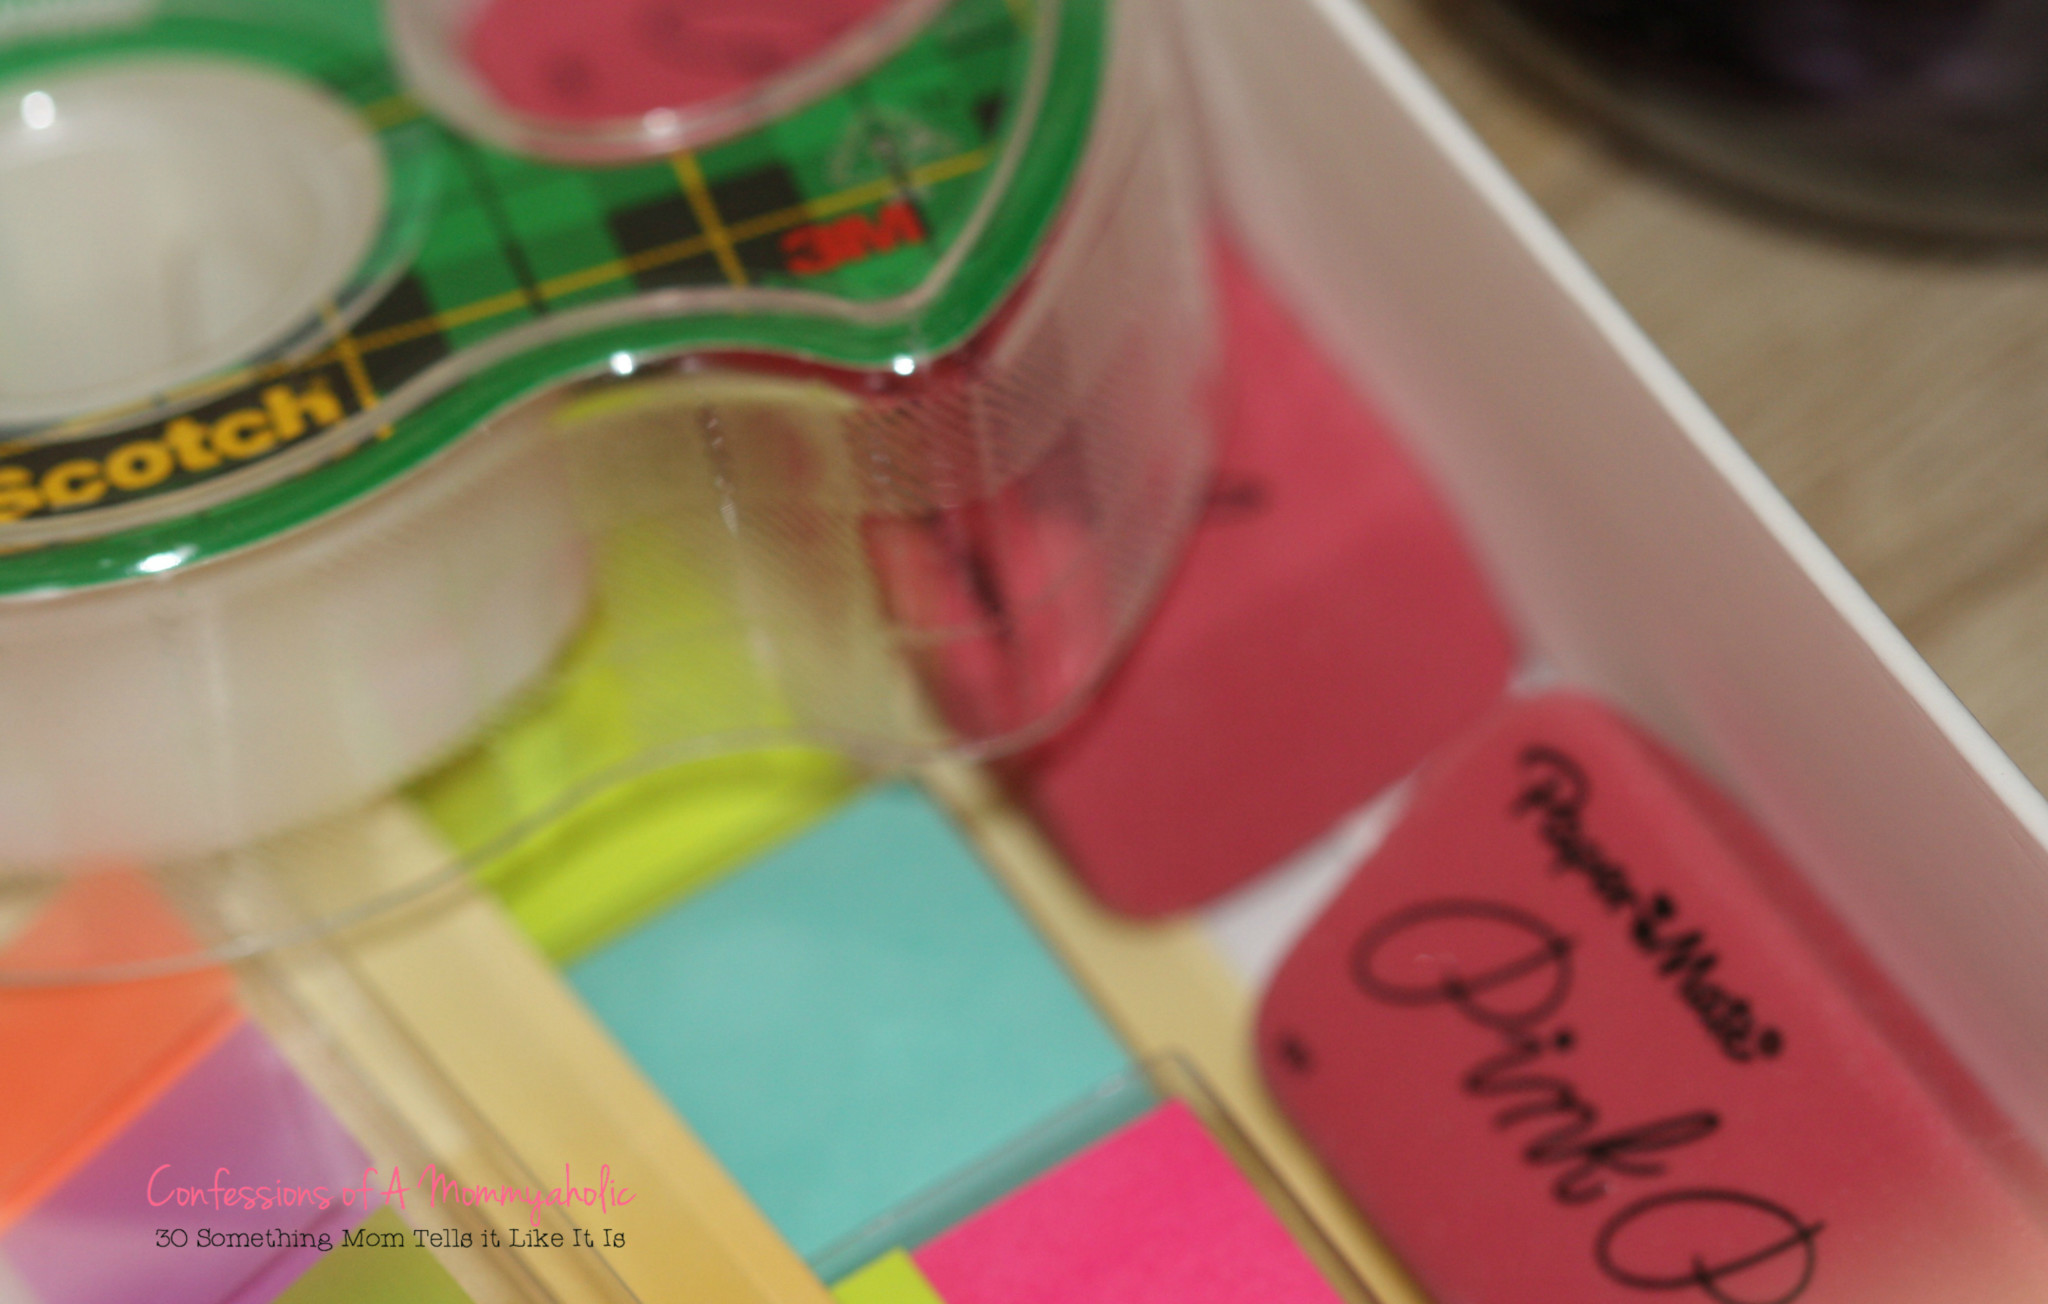 Scotch Tape, Erasers, Post-It Notes